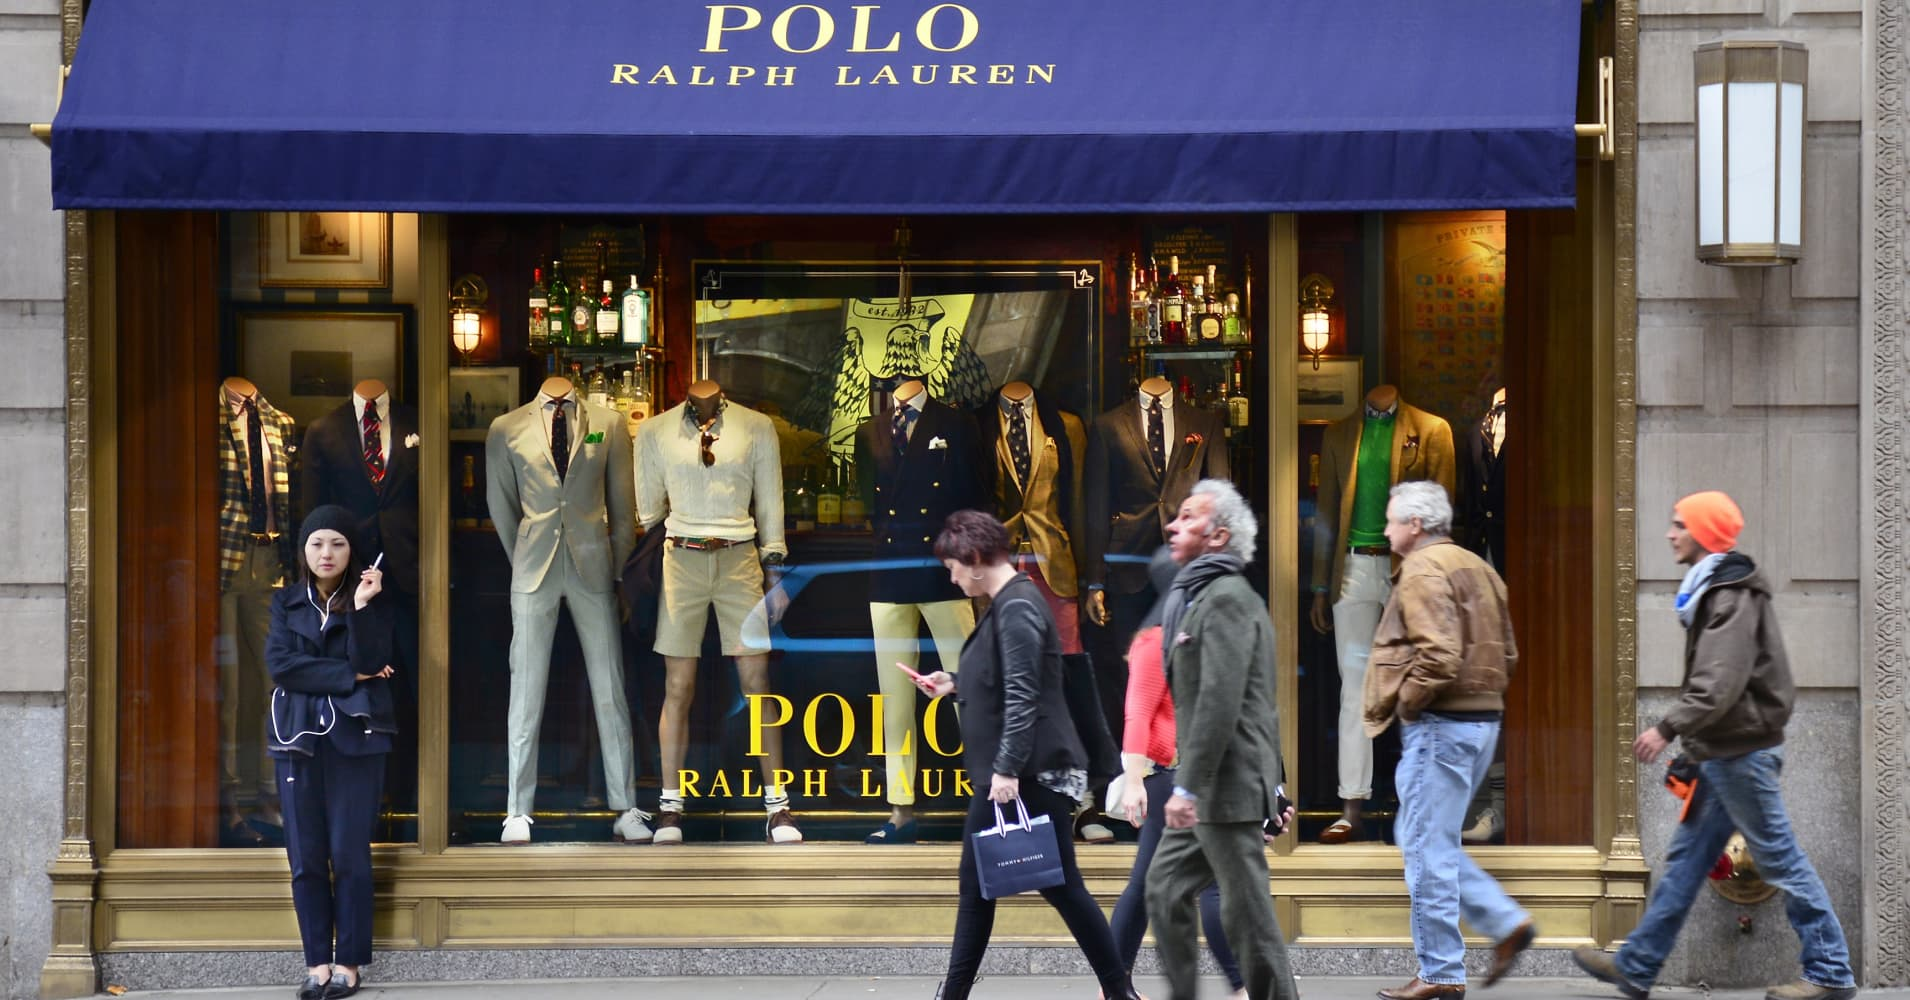 Fashion giant Ralph Lauren is launching its first streetwear collaboration